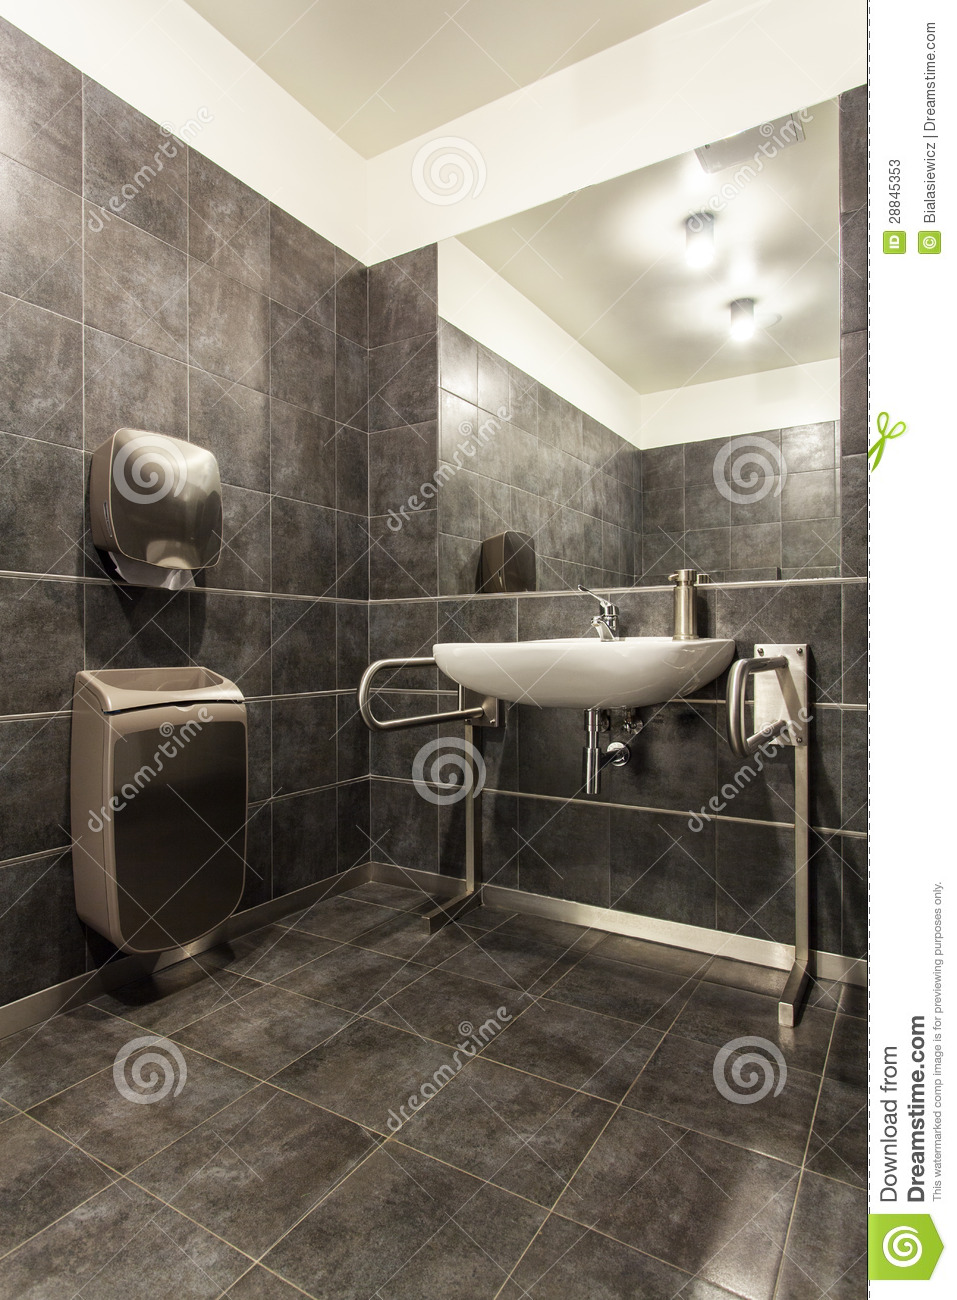 Woodland Hotel  Bathroom For The Disabled Stock Image